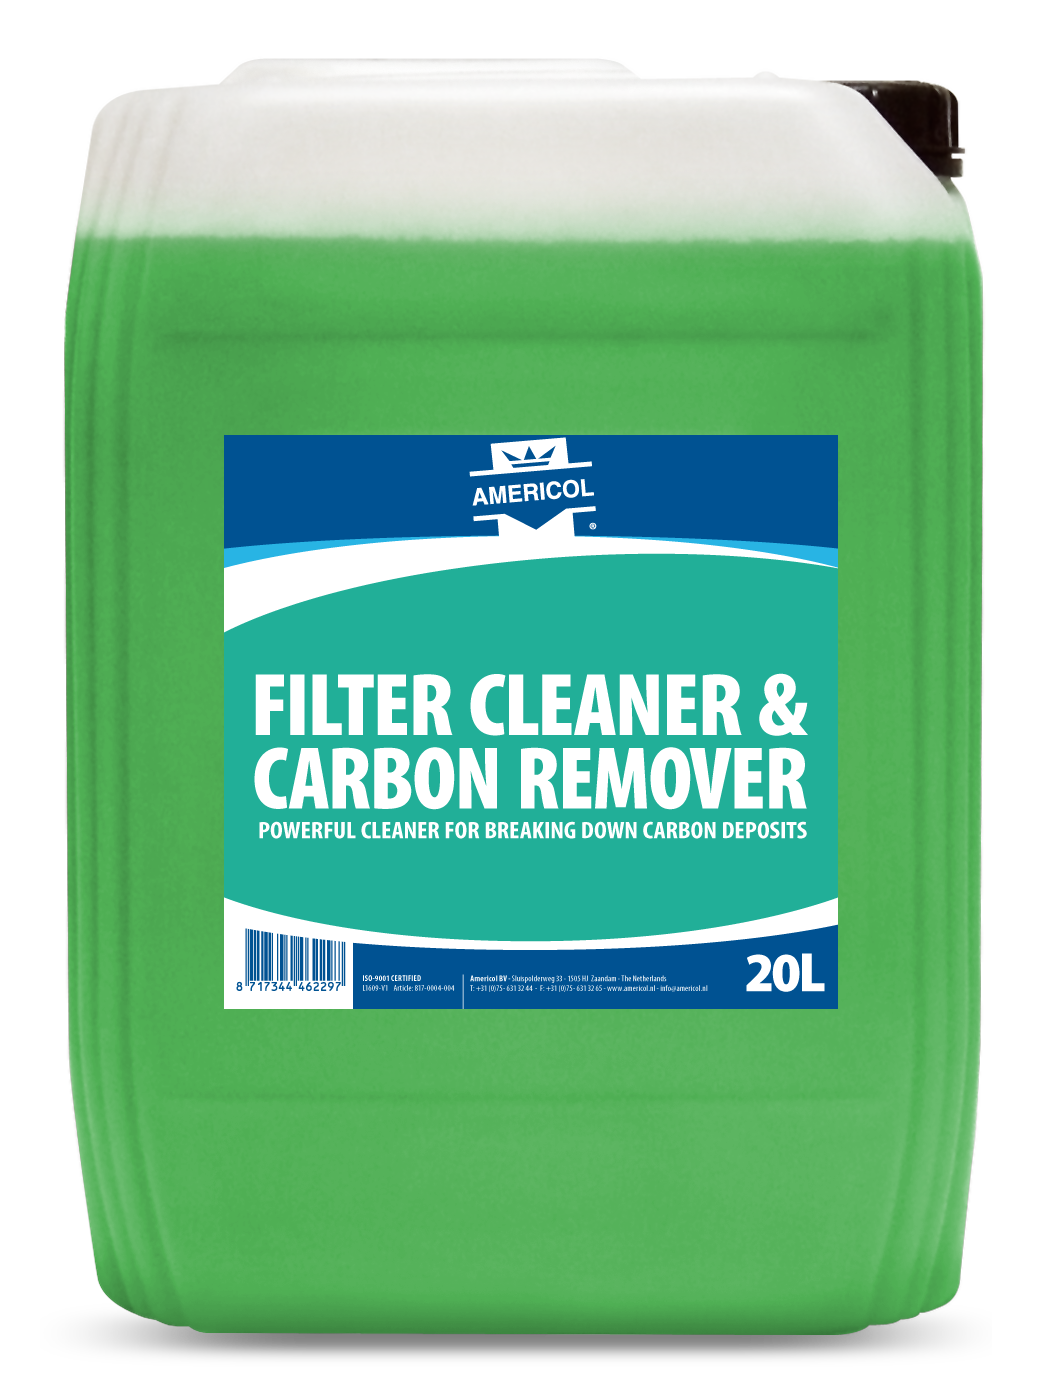 Filter Cleaner Carbon Remover 20L